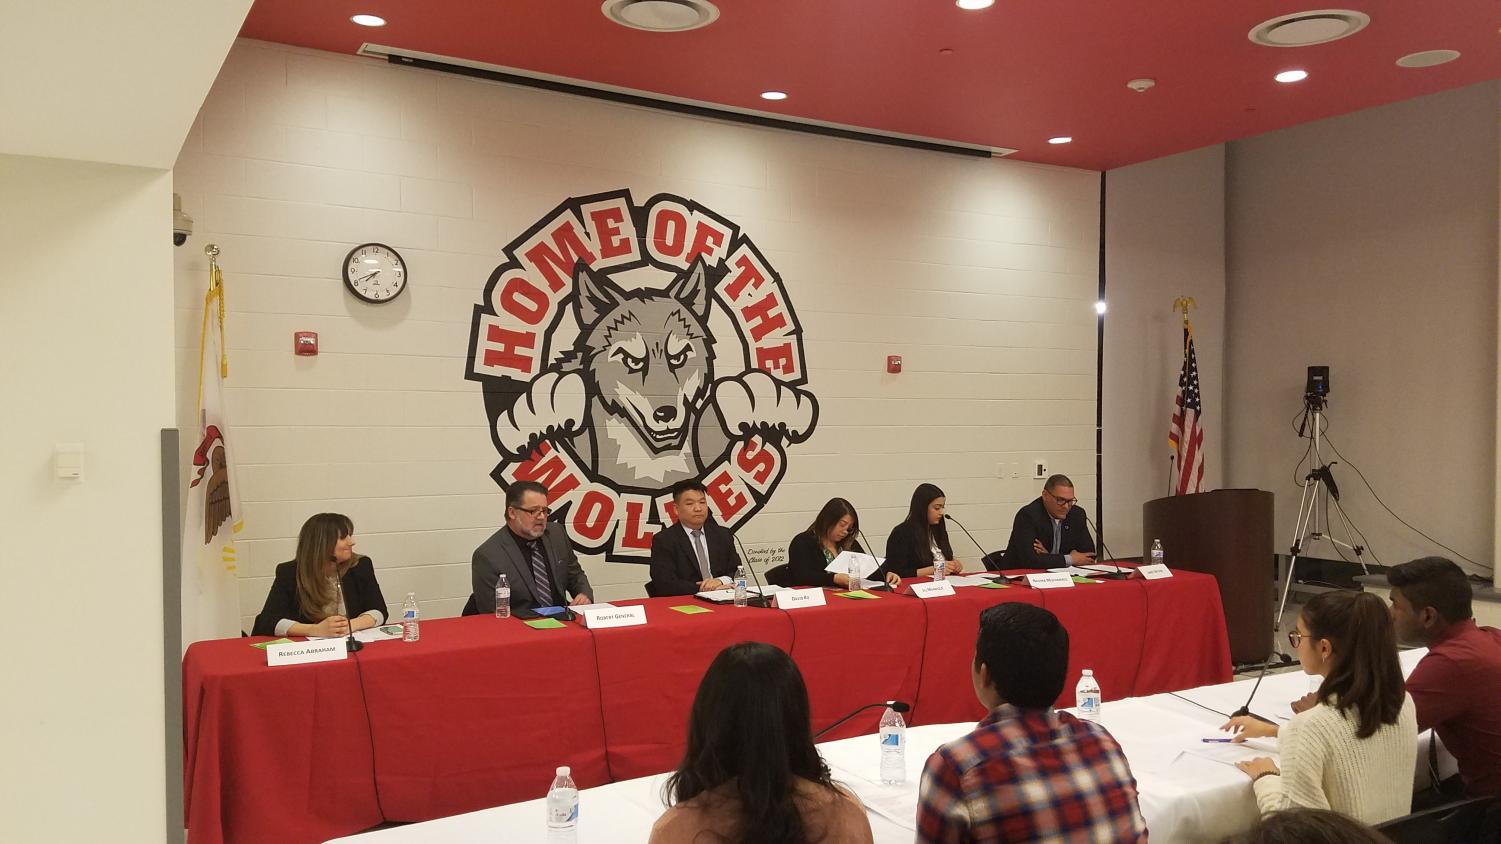 Candidates for District 219 Board of Education had the opportunity to participate in a forum to discuss their reasons for wanting to be elected to the board.